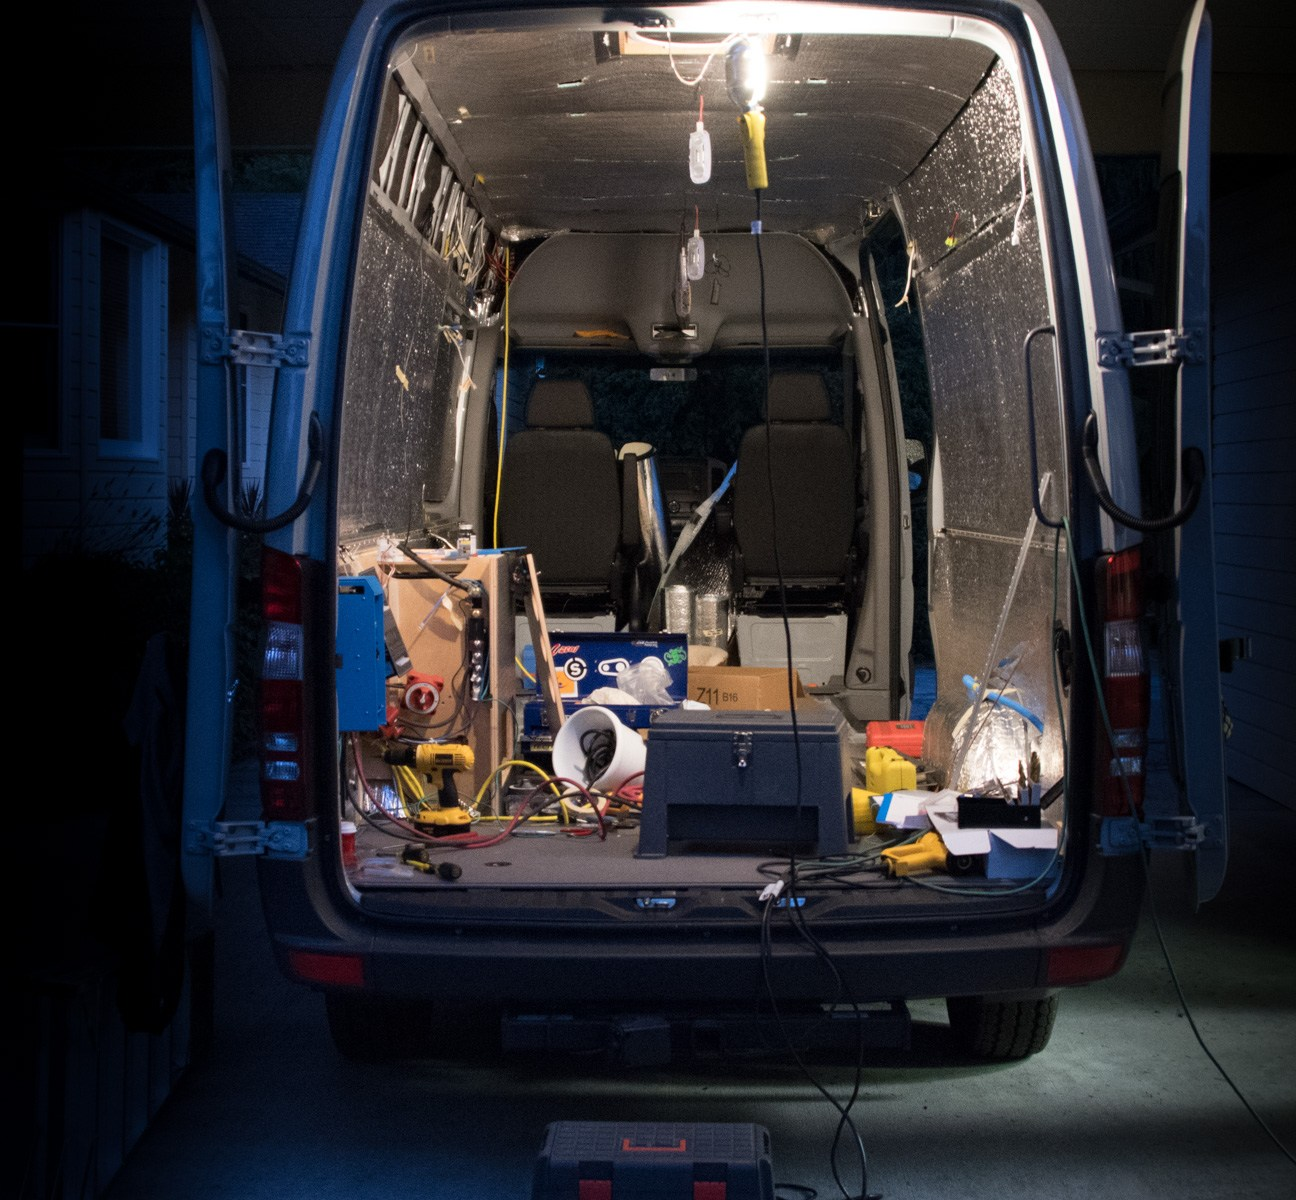 Working on the van at night